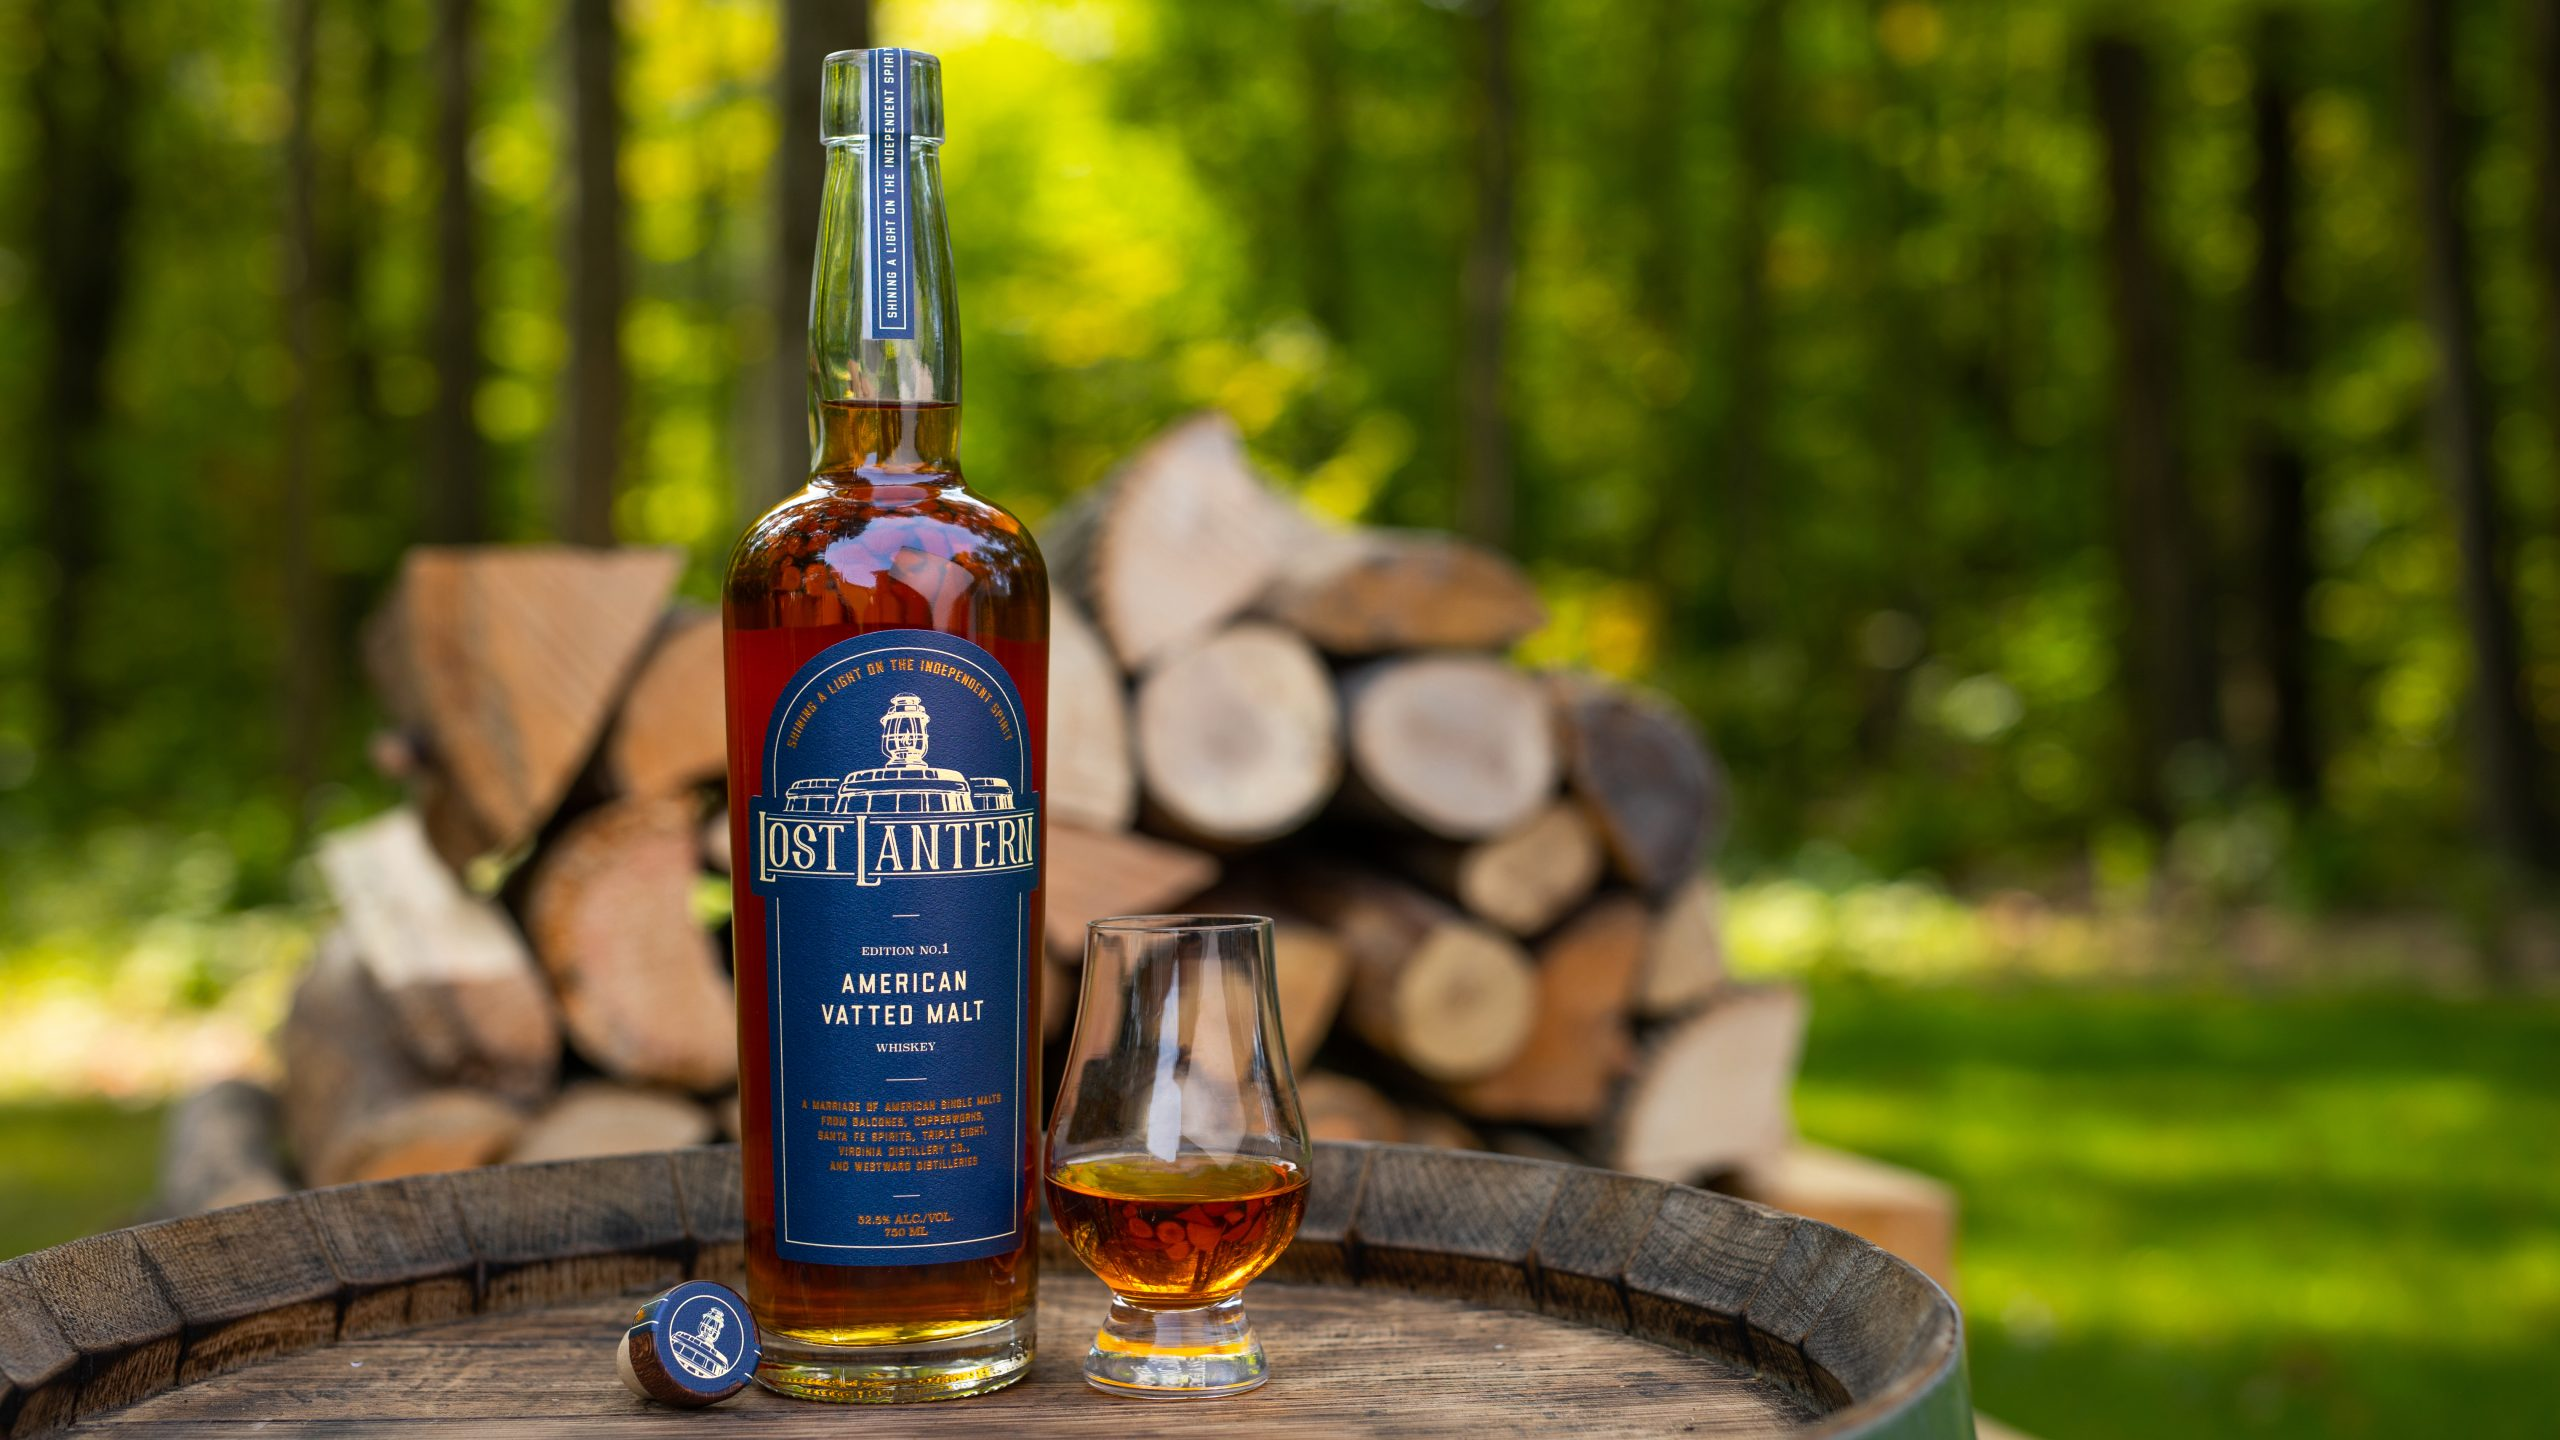 Lost Lantern American Vatted Malt Edition No 1